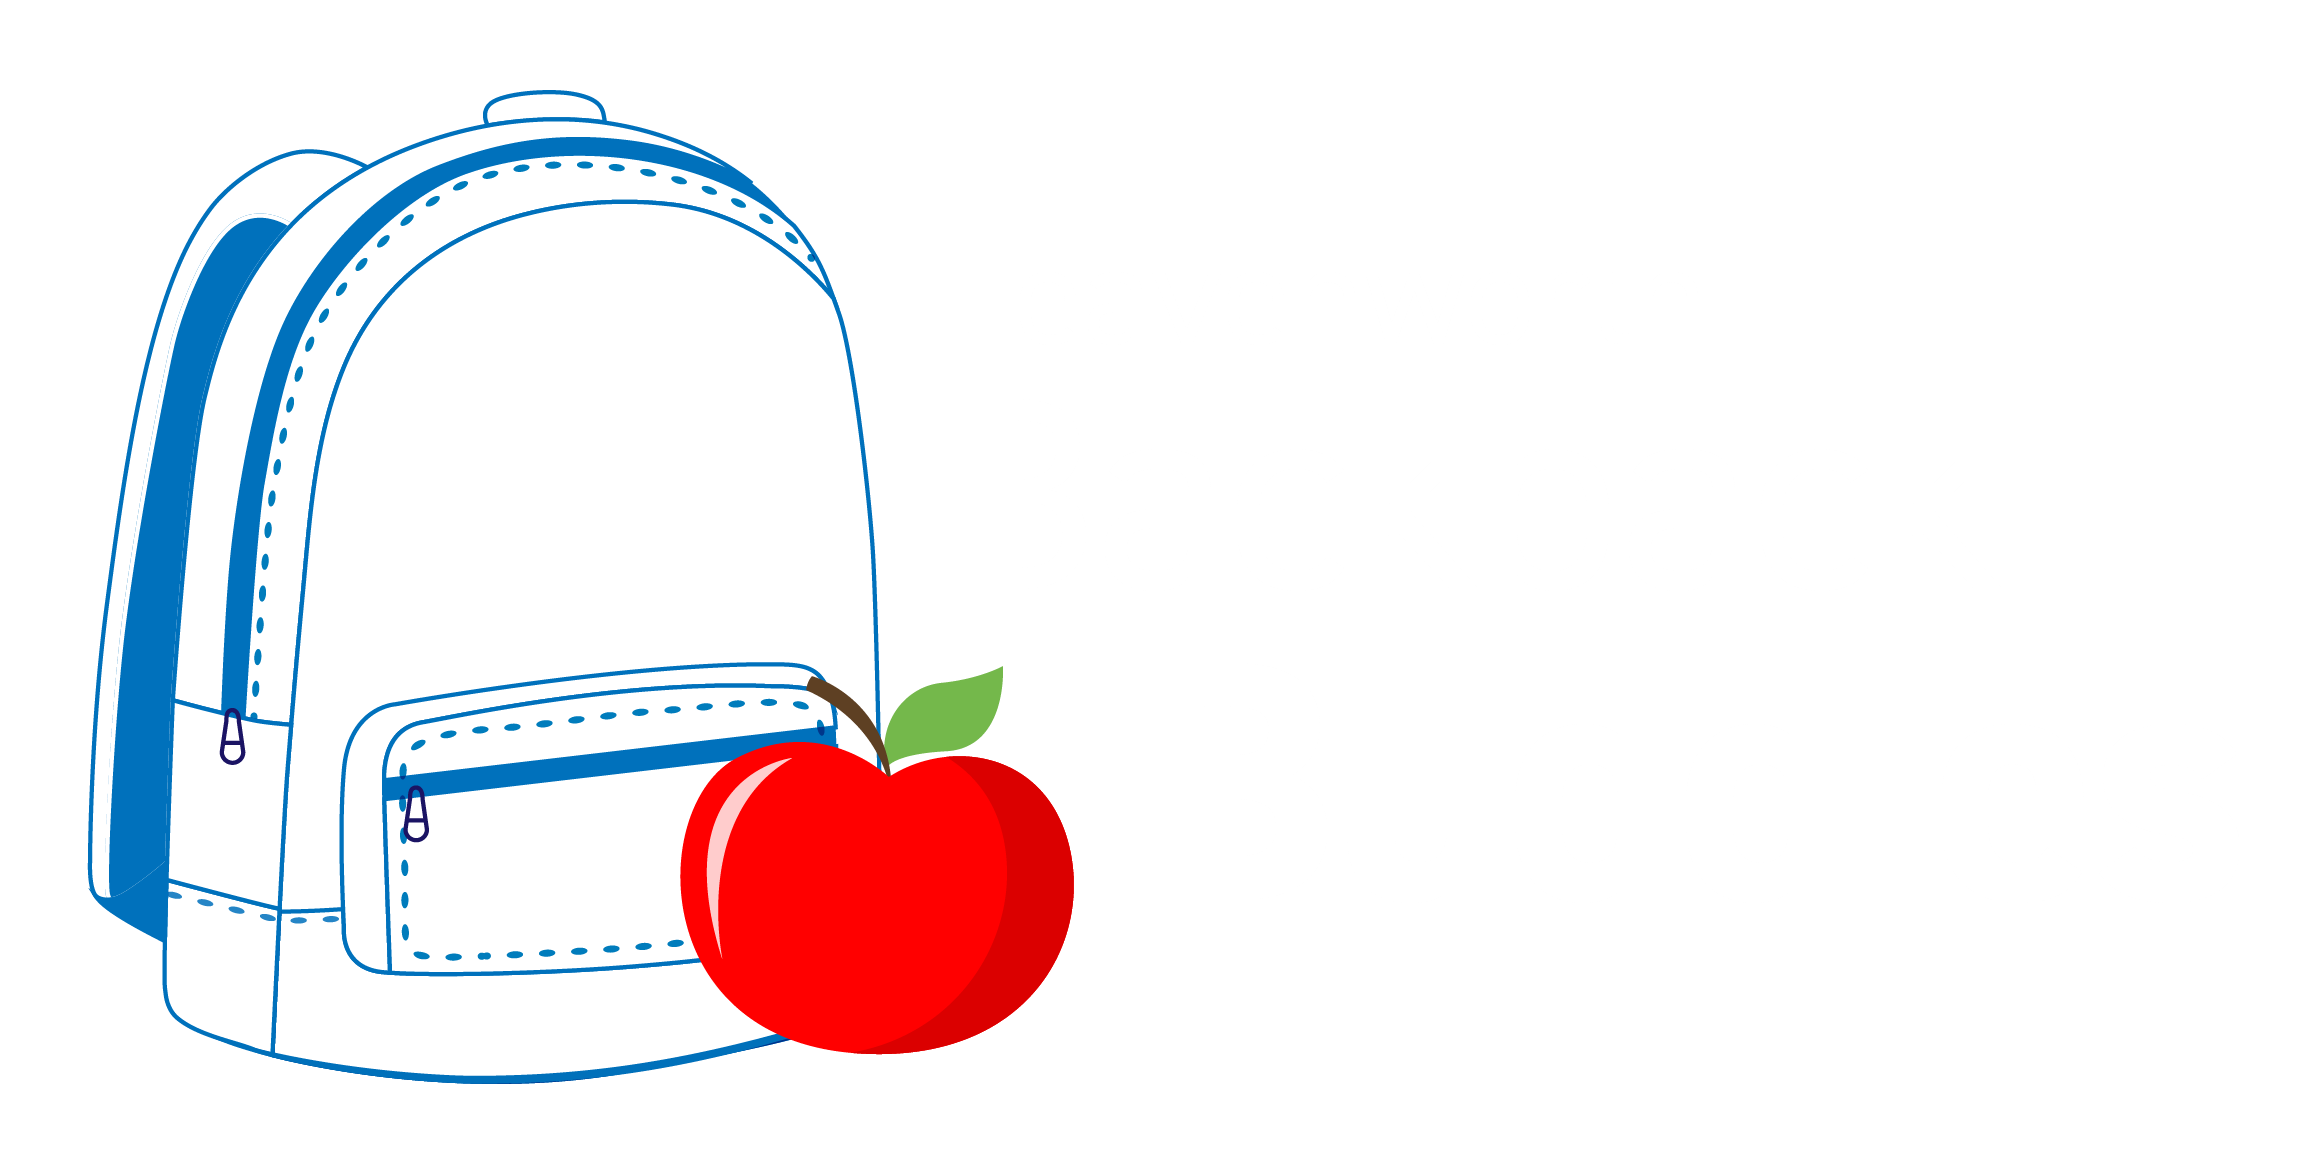 Backpack buddies logos Leavenworth update-01.png